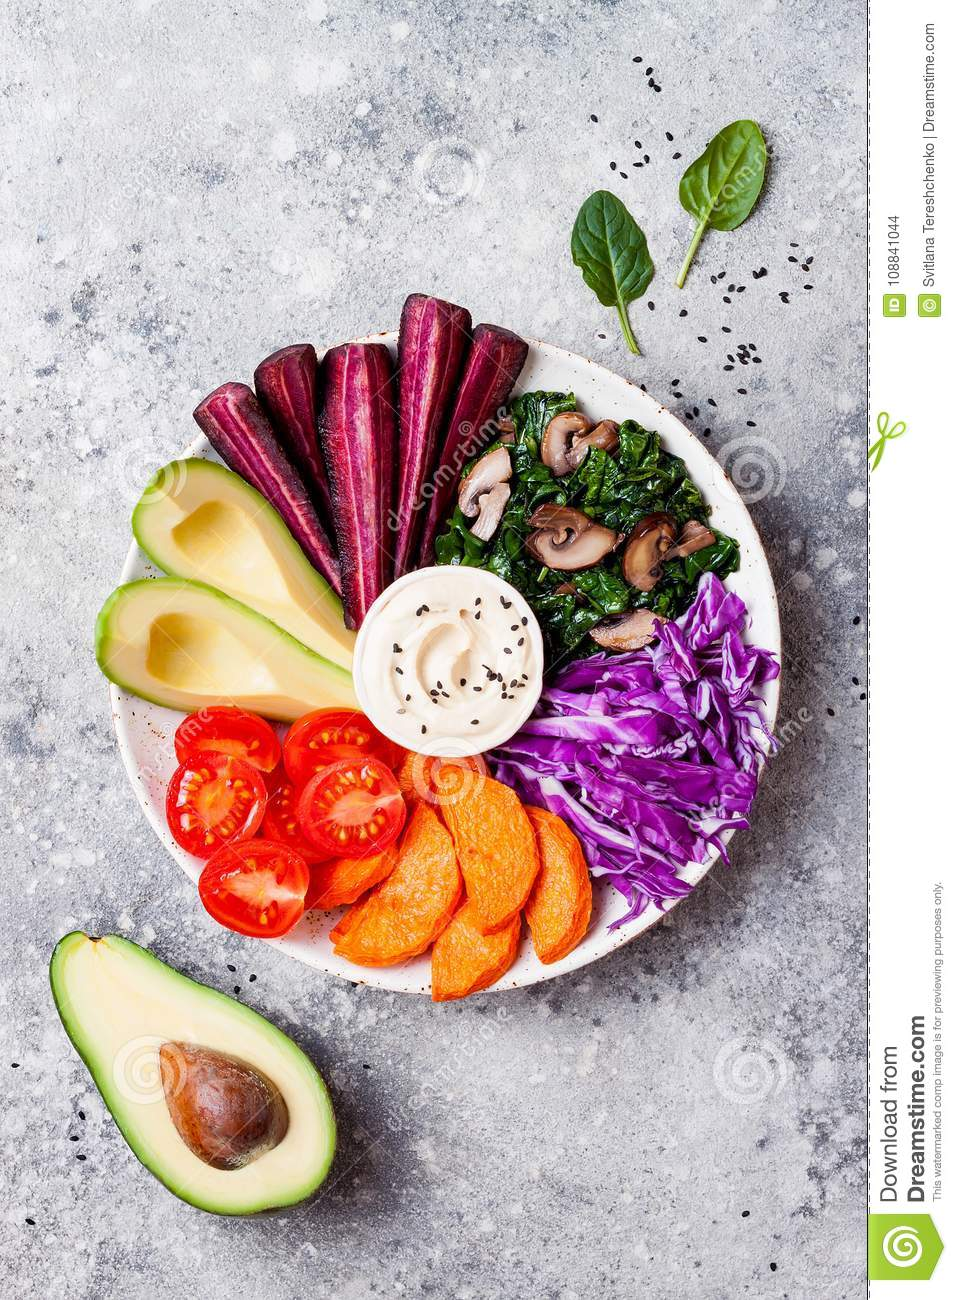 Buddha Bowl With Roasted Butternut Hummus Cabbage Healthy Vegetarian Appetizer Or Snack Platter Winter Veggies Detox Lunch Stock Photo Image Of Plate Avocado 108841044